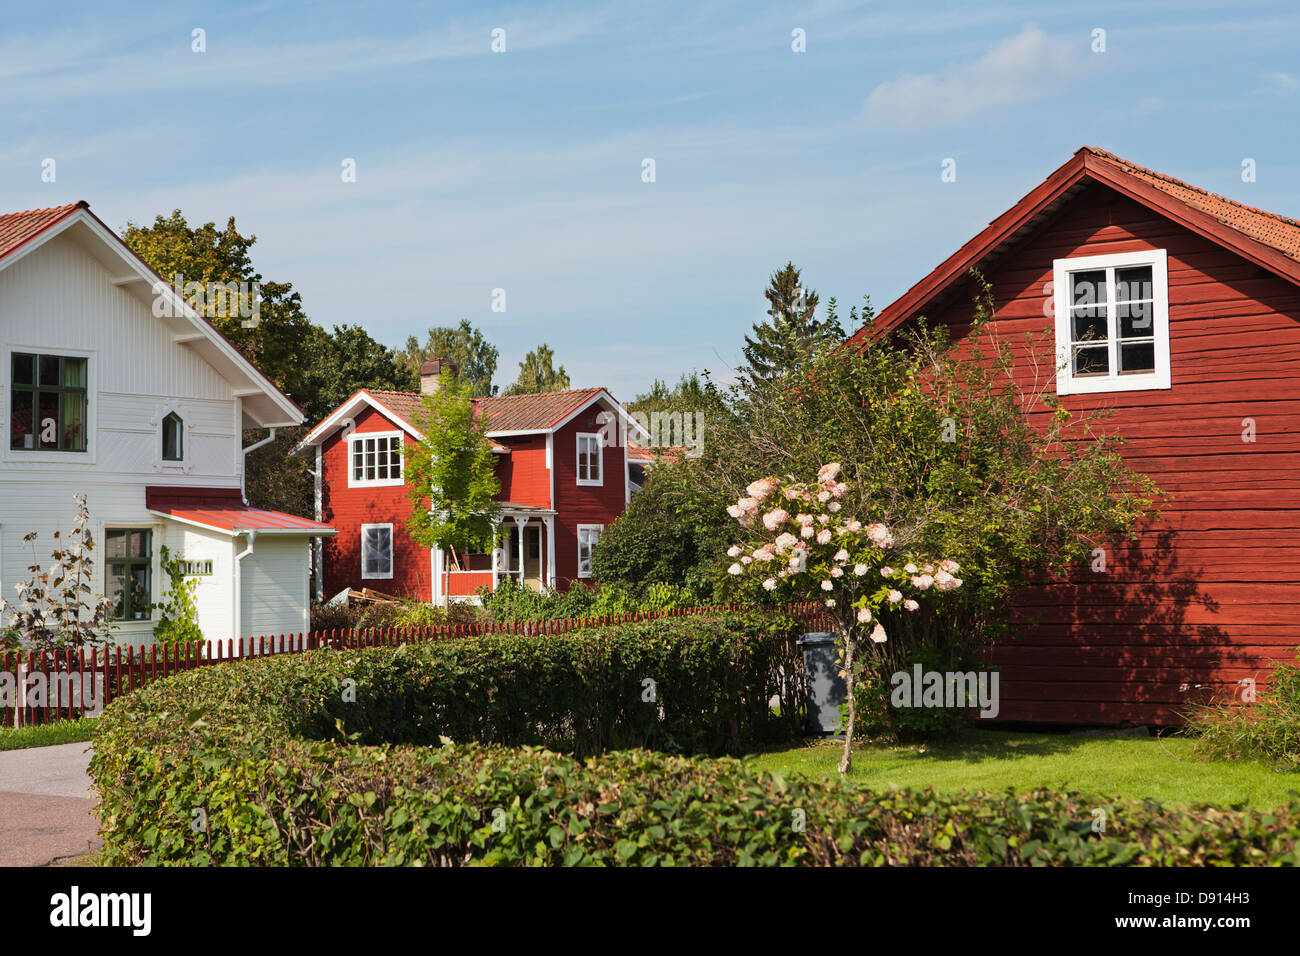 Houses at suburbs - Stock Image